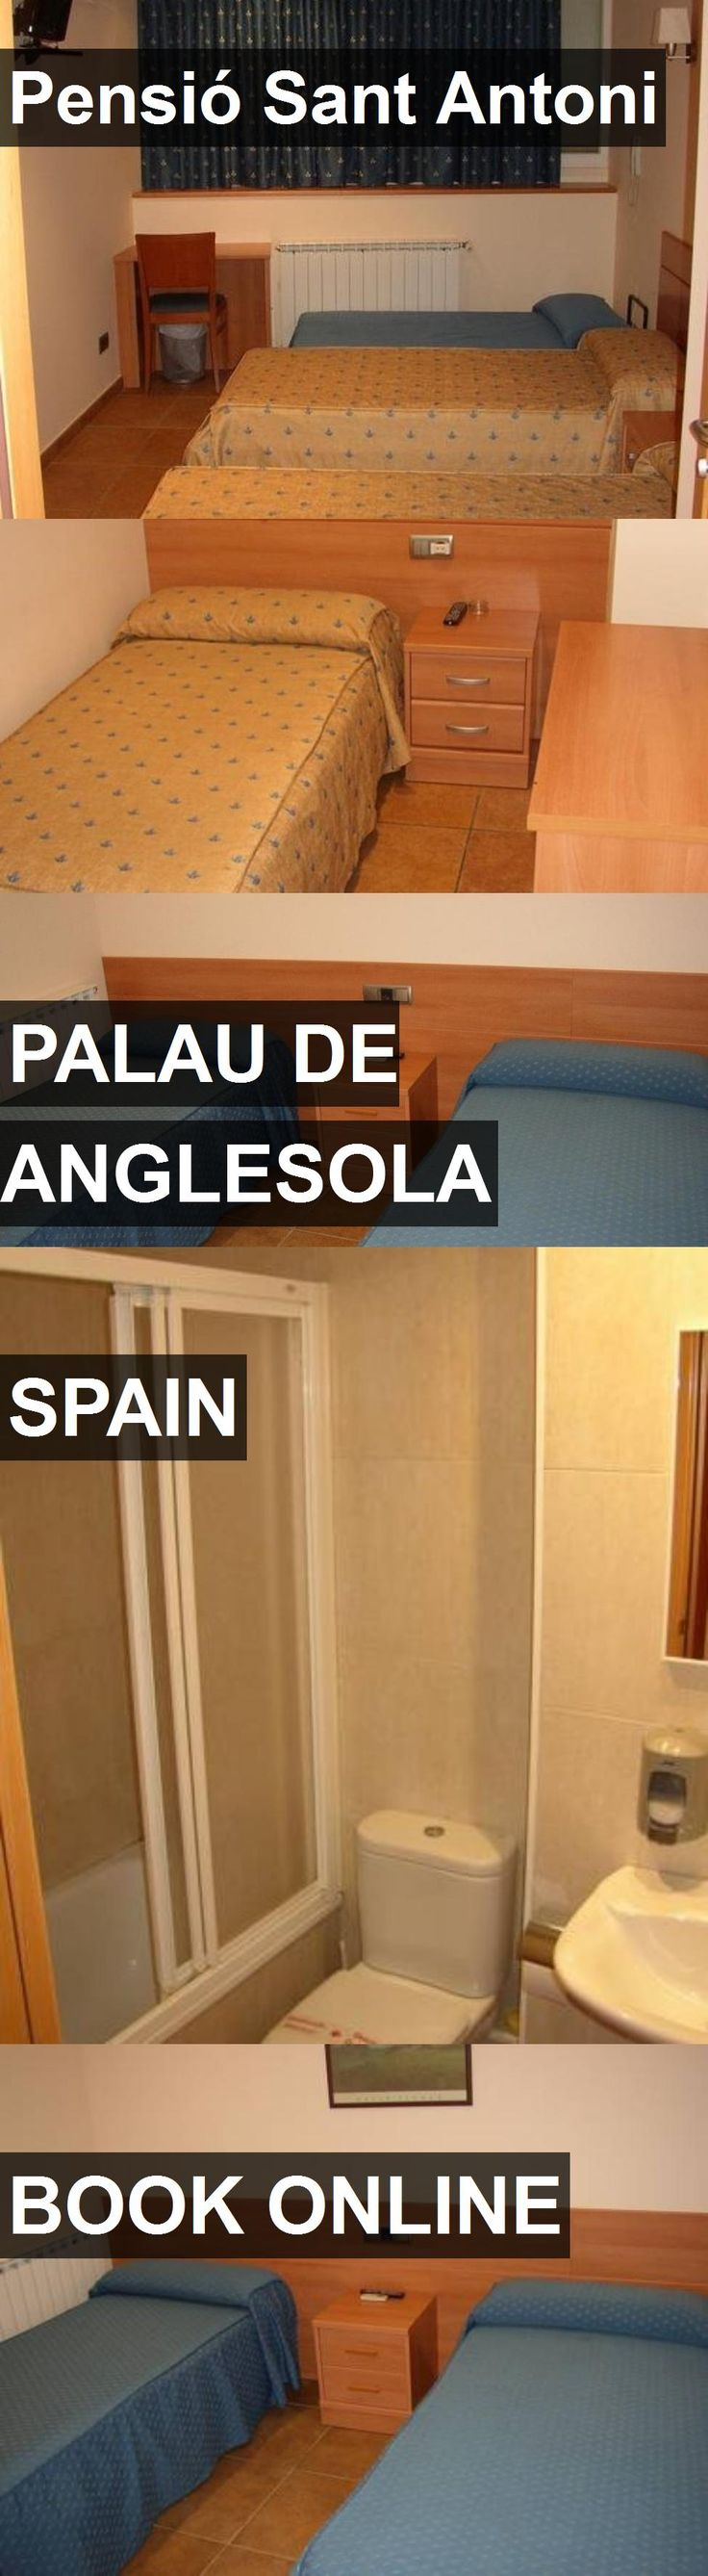 Hotel Pensió Sant Antoni in Palau de Anglesola, Spain. For more information, photos, reviews and best prices please follow the link. #Spain #PalaudeAnglesola #travel #vacation #hotel